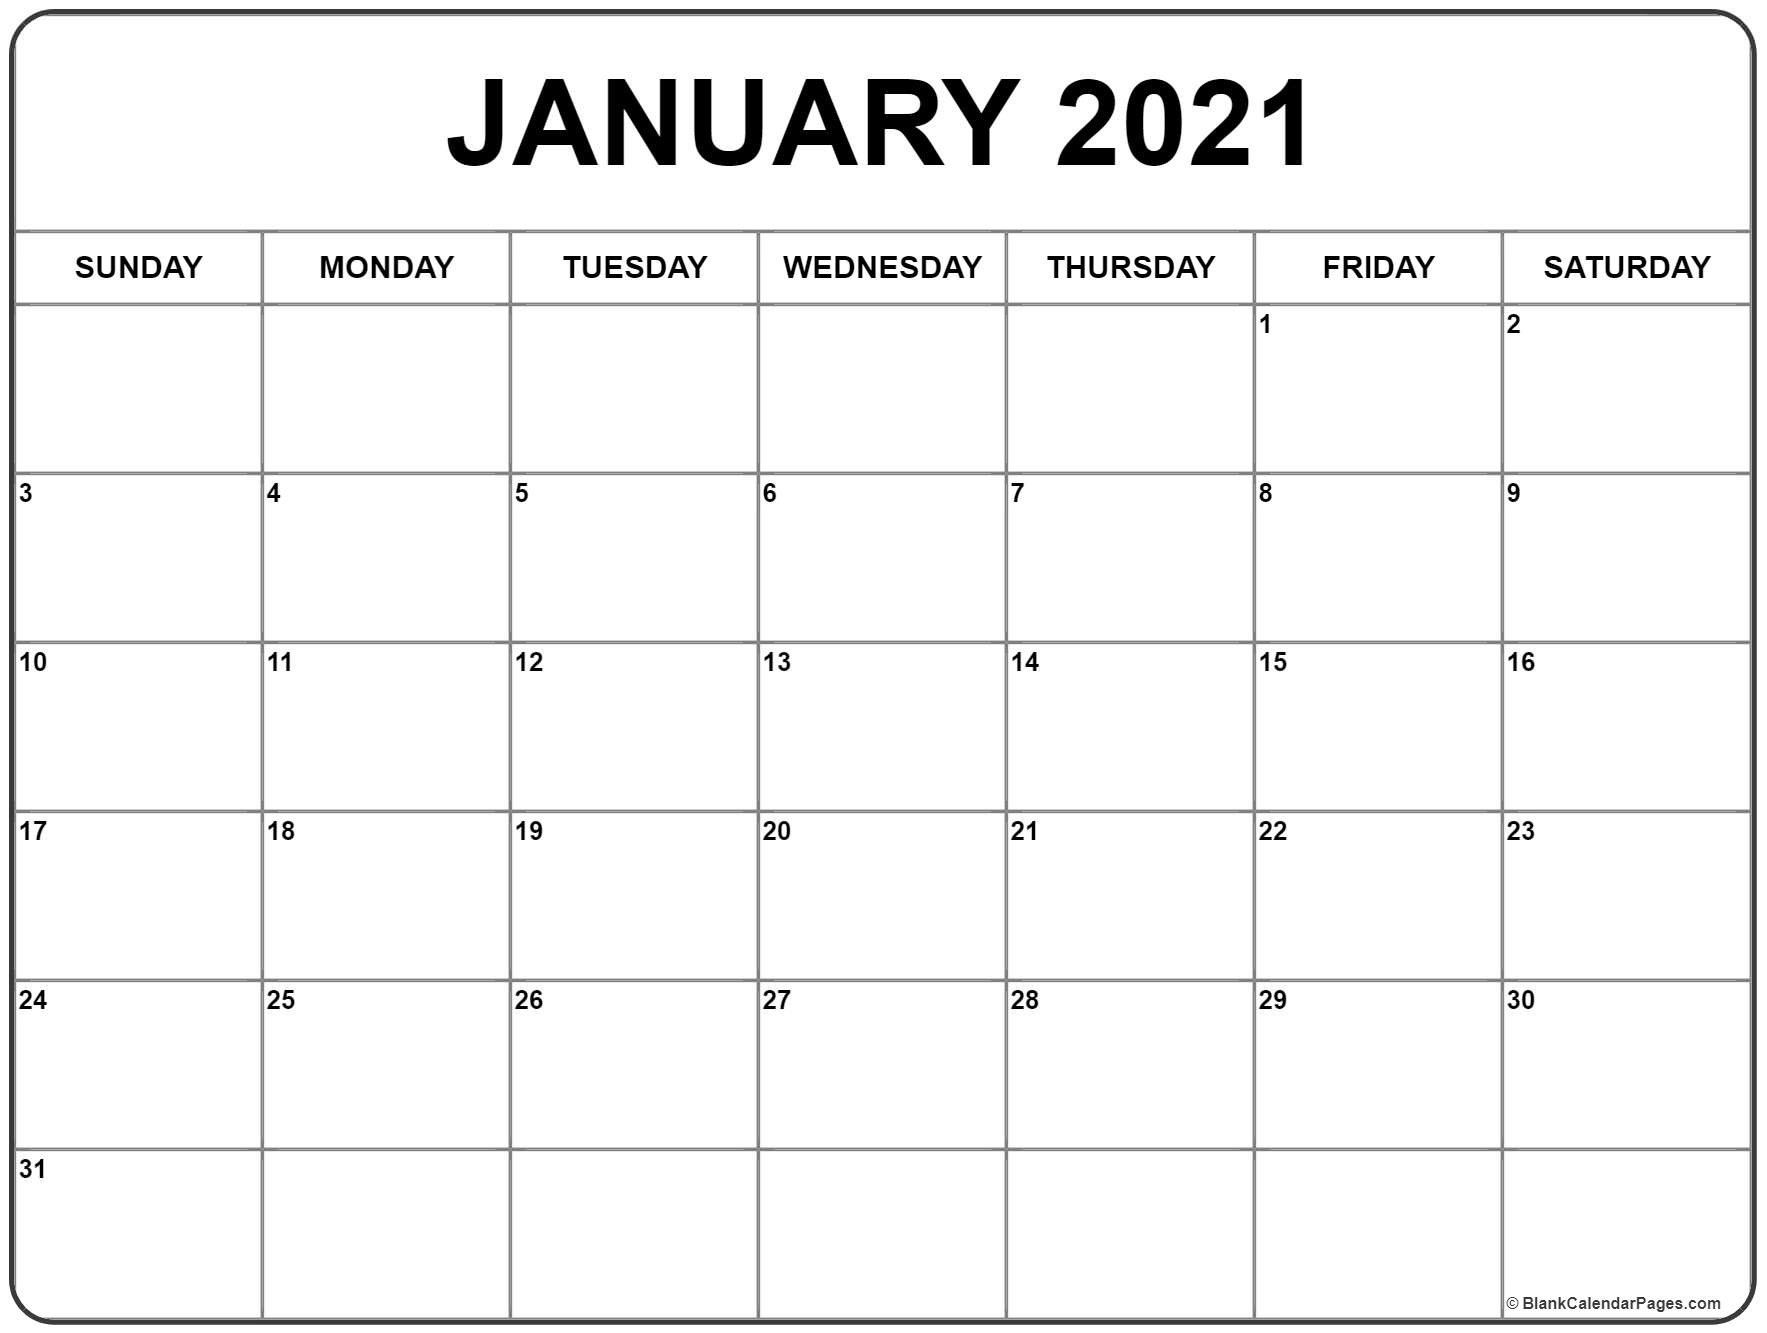 Blank Calendar Jan 2021 January 2021 Printable Calendar in 2020 | Monthly calendar